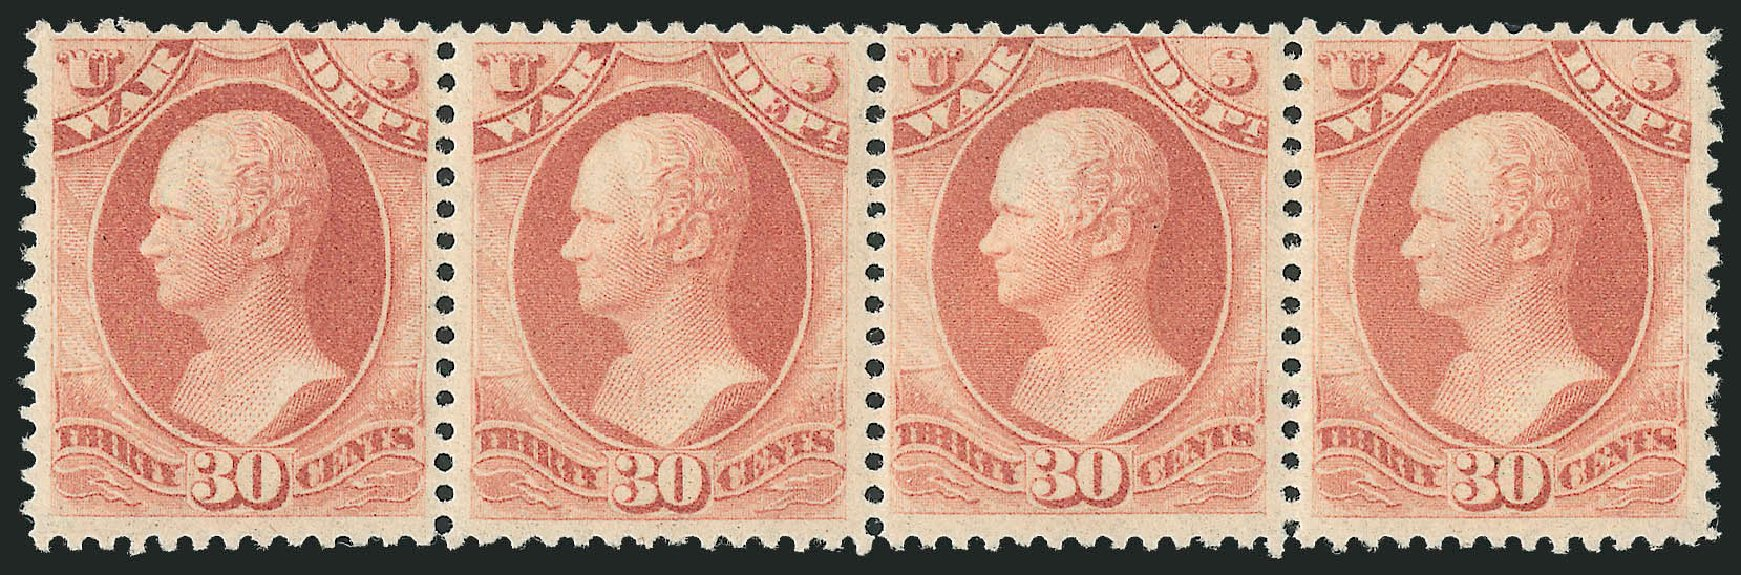 Prices of US Stamp Scott Catalogue # O92: 30c 1873 War Official. Robert Siegel Auction Galleries, Nov 2013, Sale 1061, Lot 4184